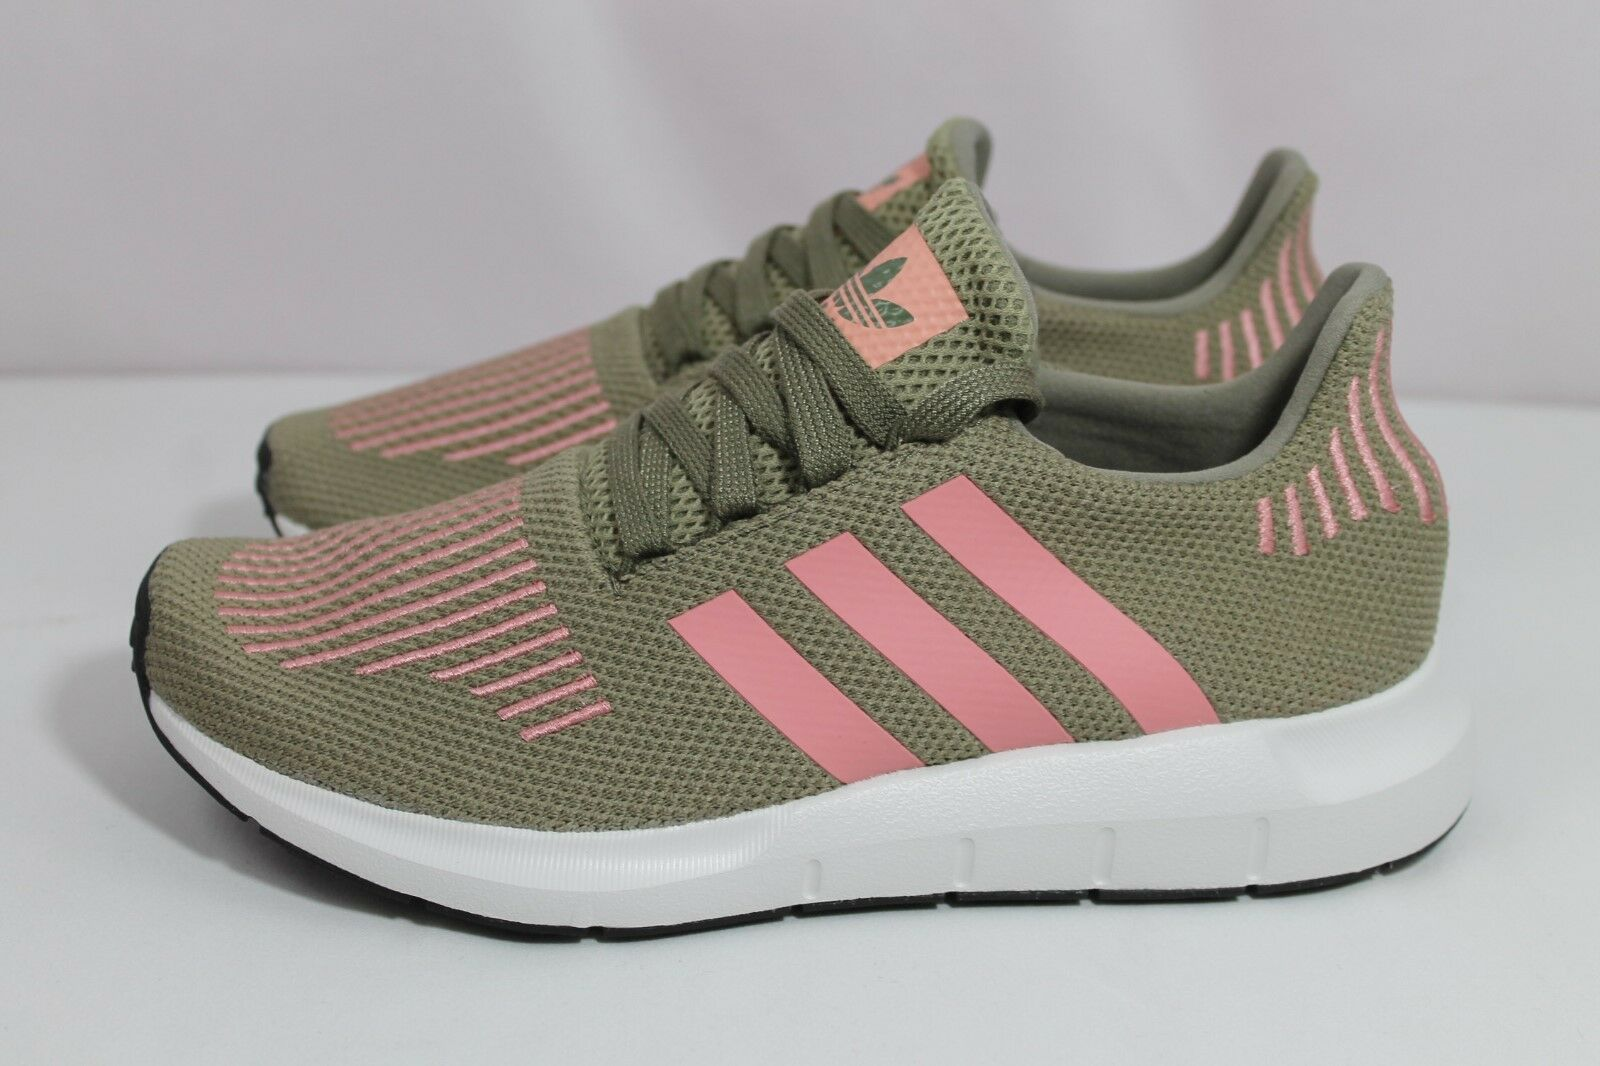 Adidas Women's Swift Run Trace Cargo/Trace Pink Sneakers CG4142 Sz 7